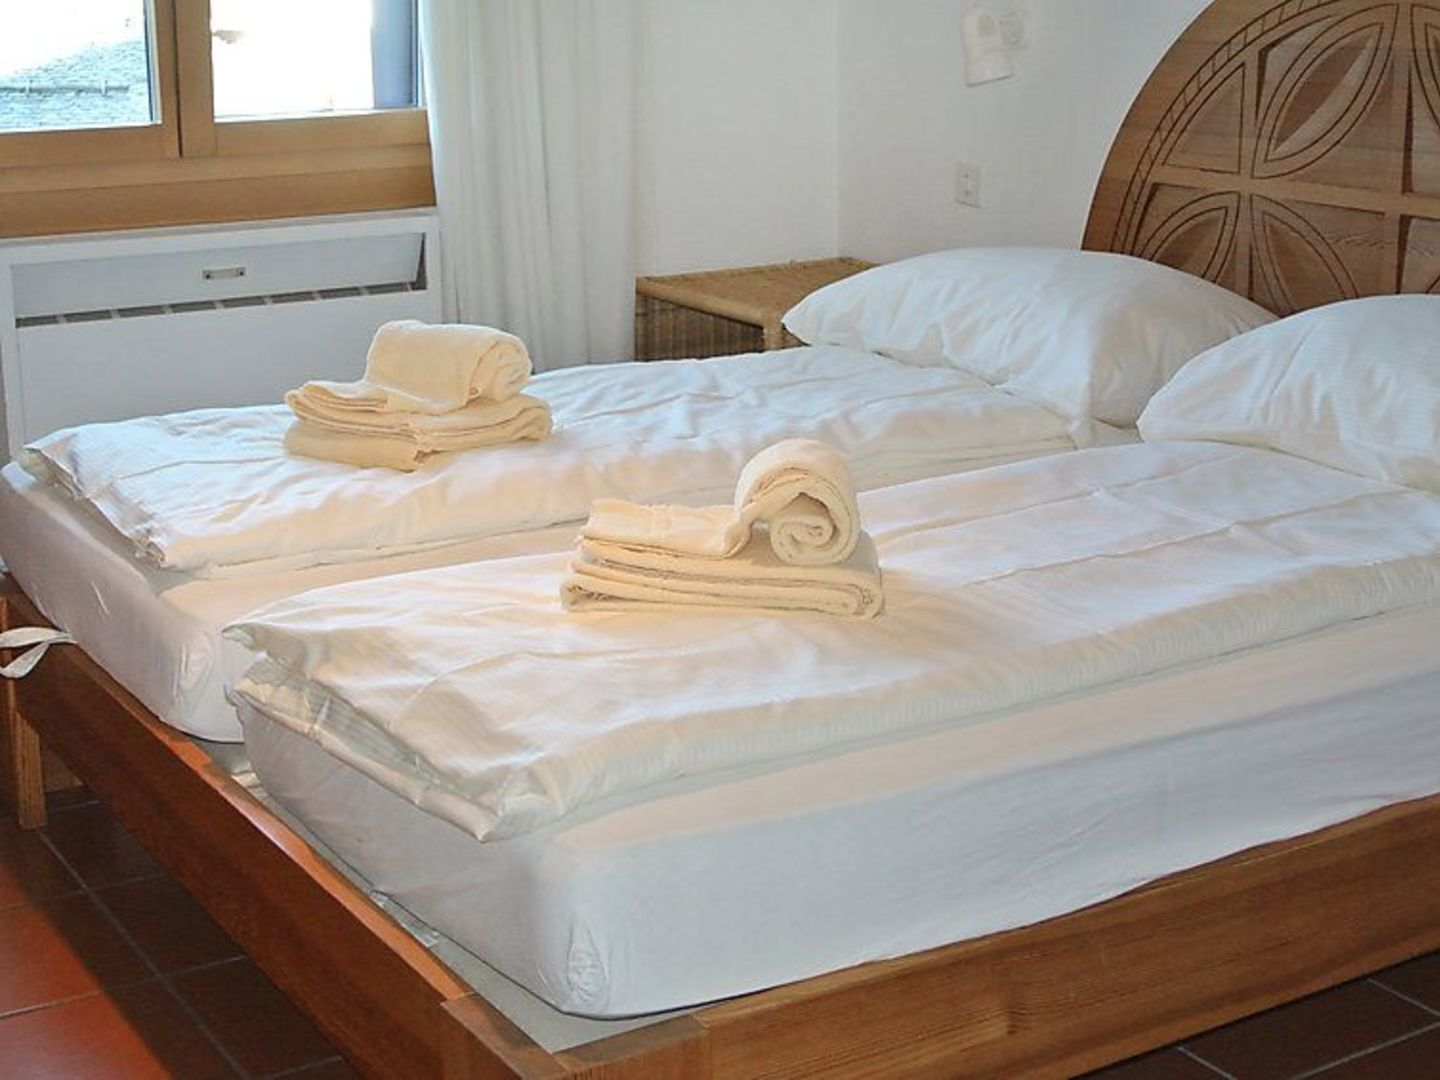 Rental apartment in Silvaplana-Surlej